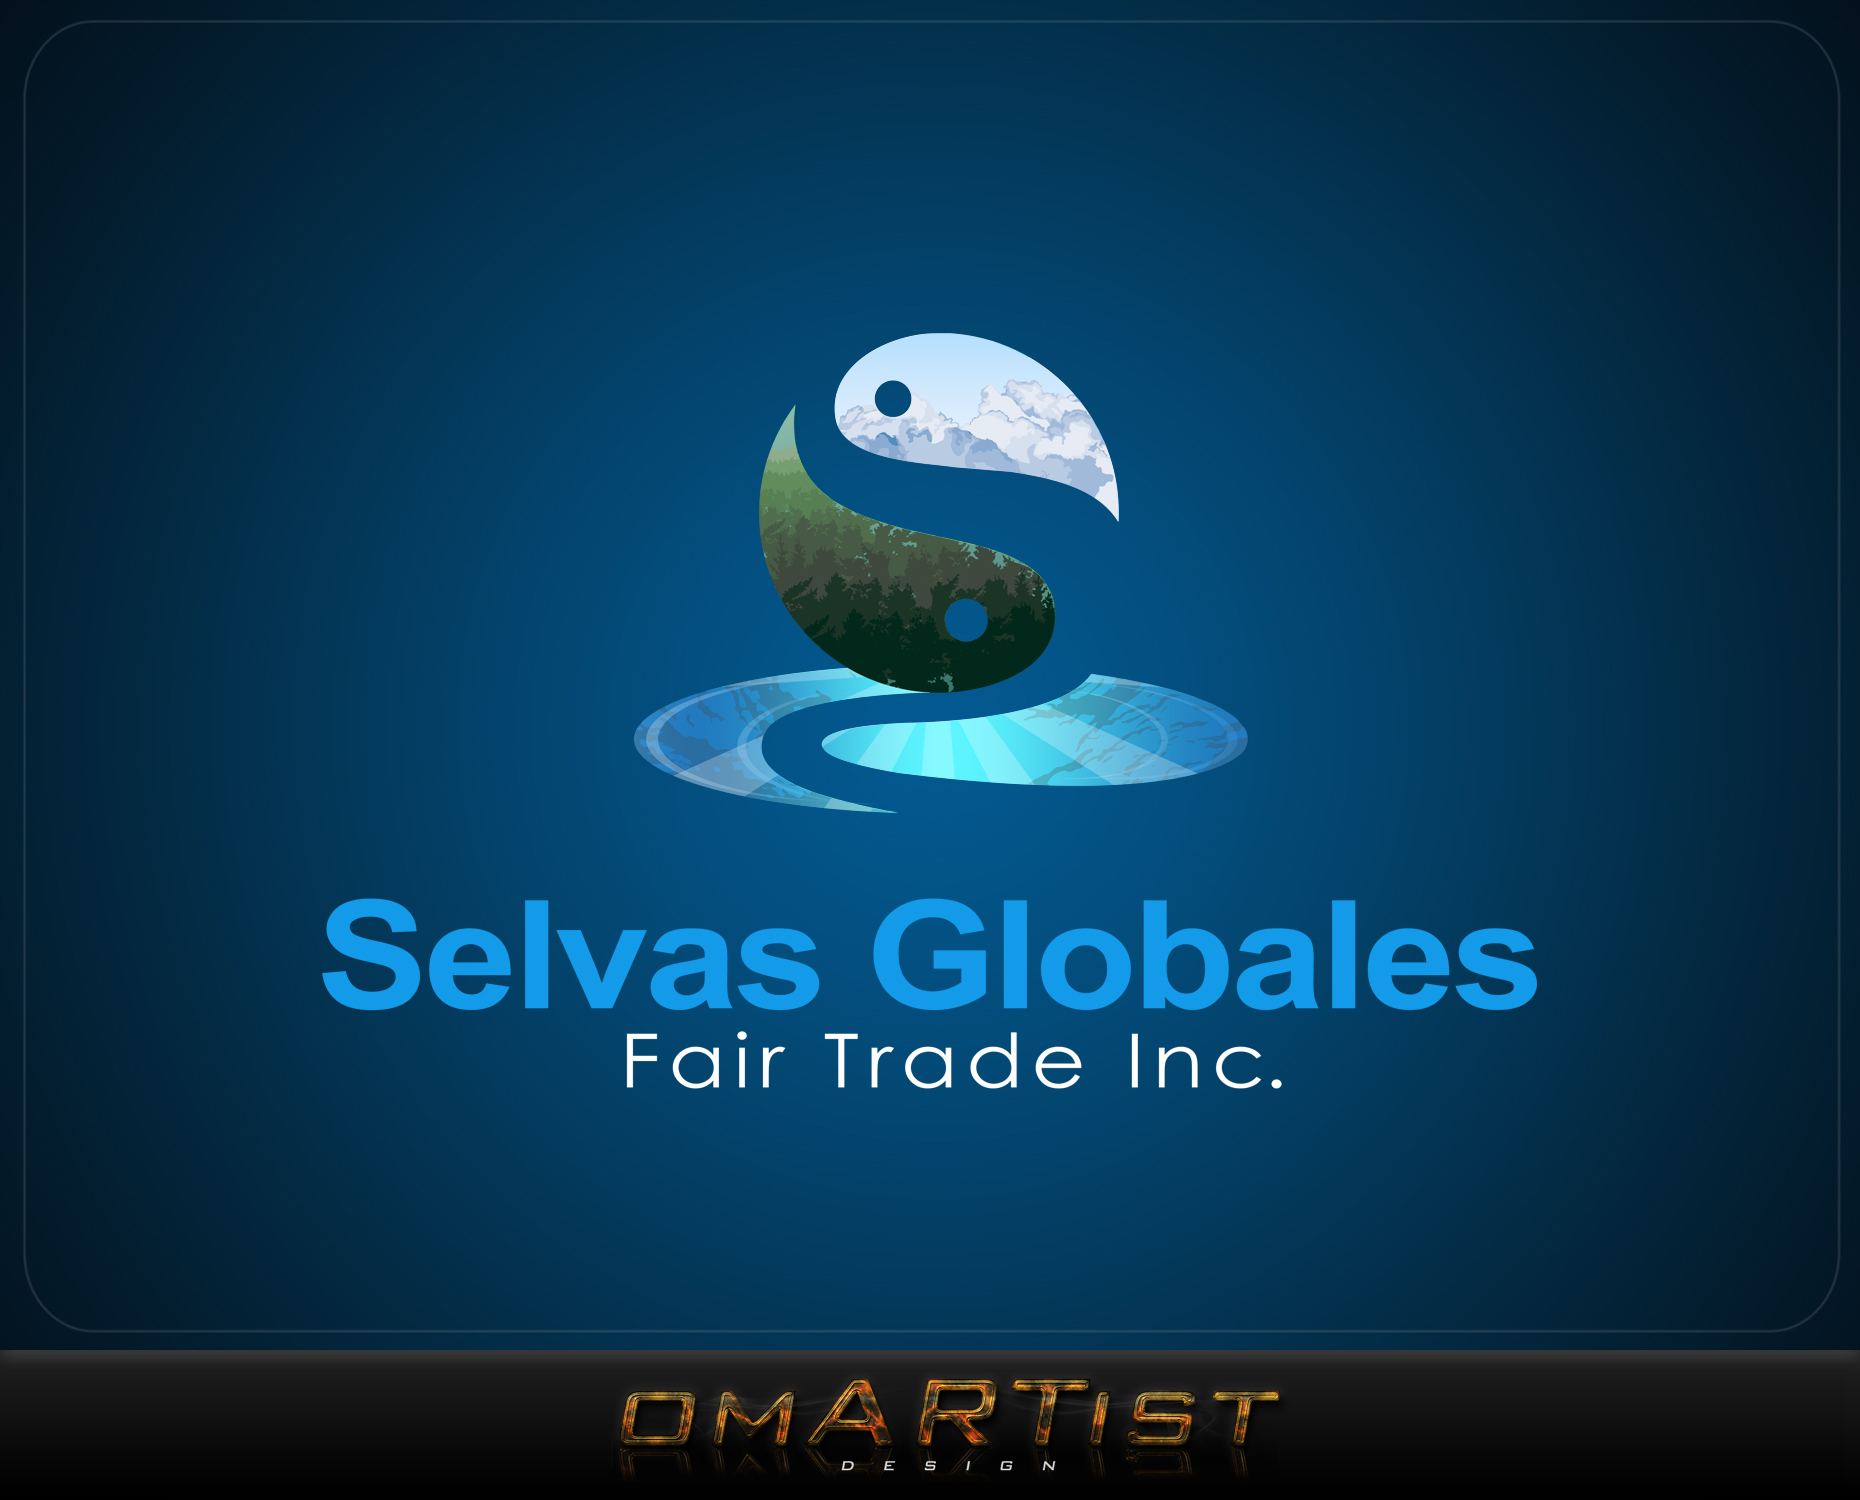 Logo Design by omARTist - Entry No. 128 in the Logo Design Contest Captivating Logo Design for Selvas Globales Fair Trade Inc..